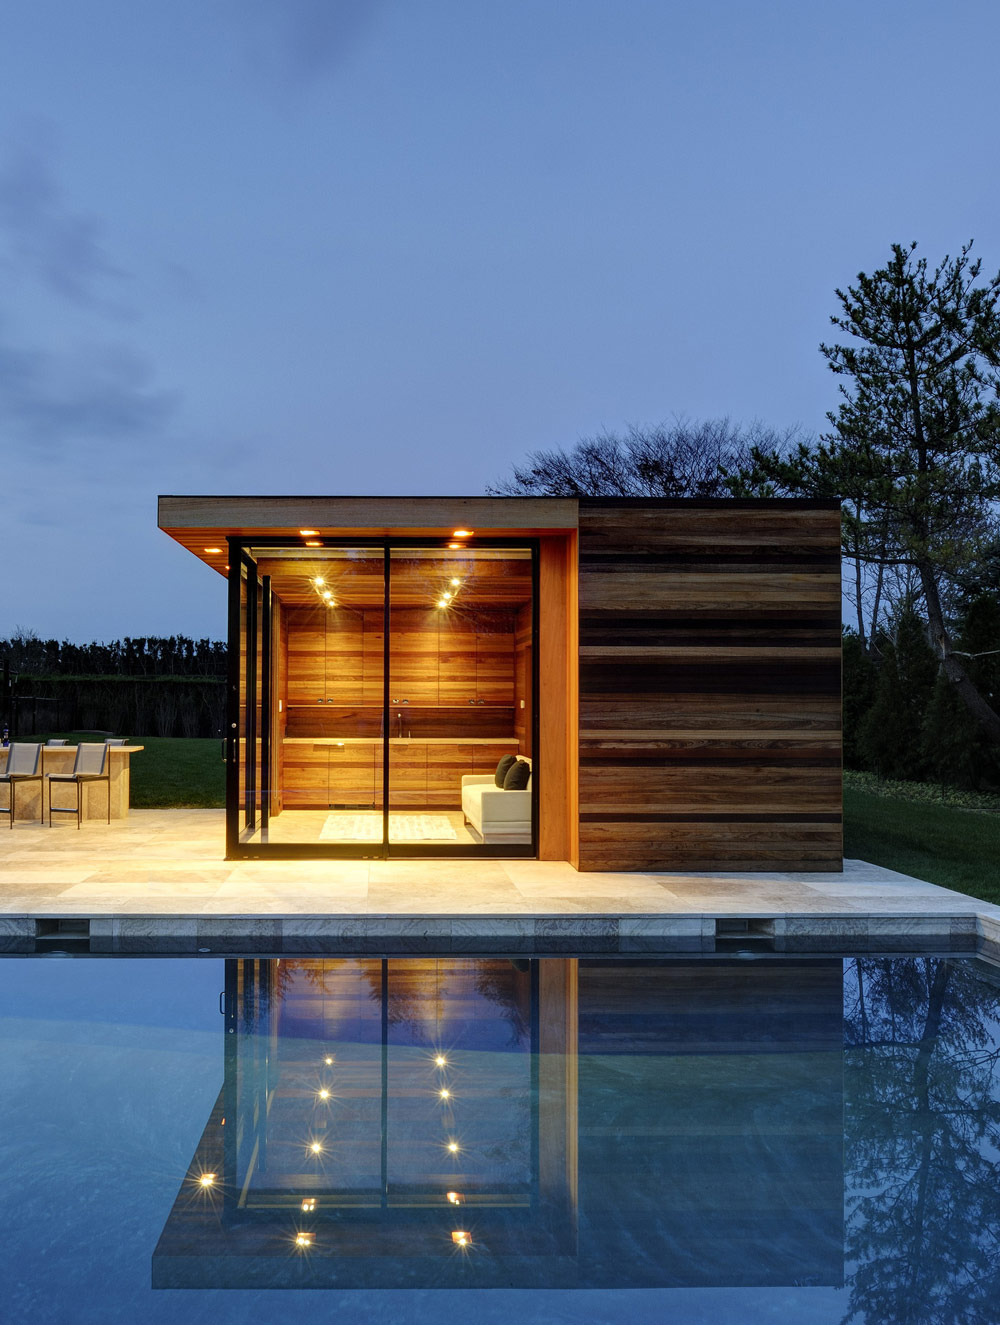 Pool House, Sam's Creek in Bridgehampton, New York by Bates Masi Architects